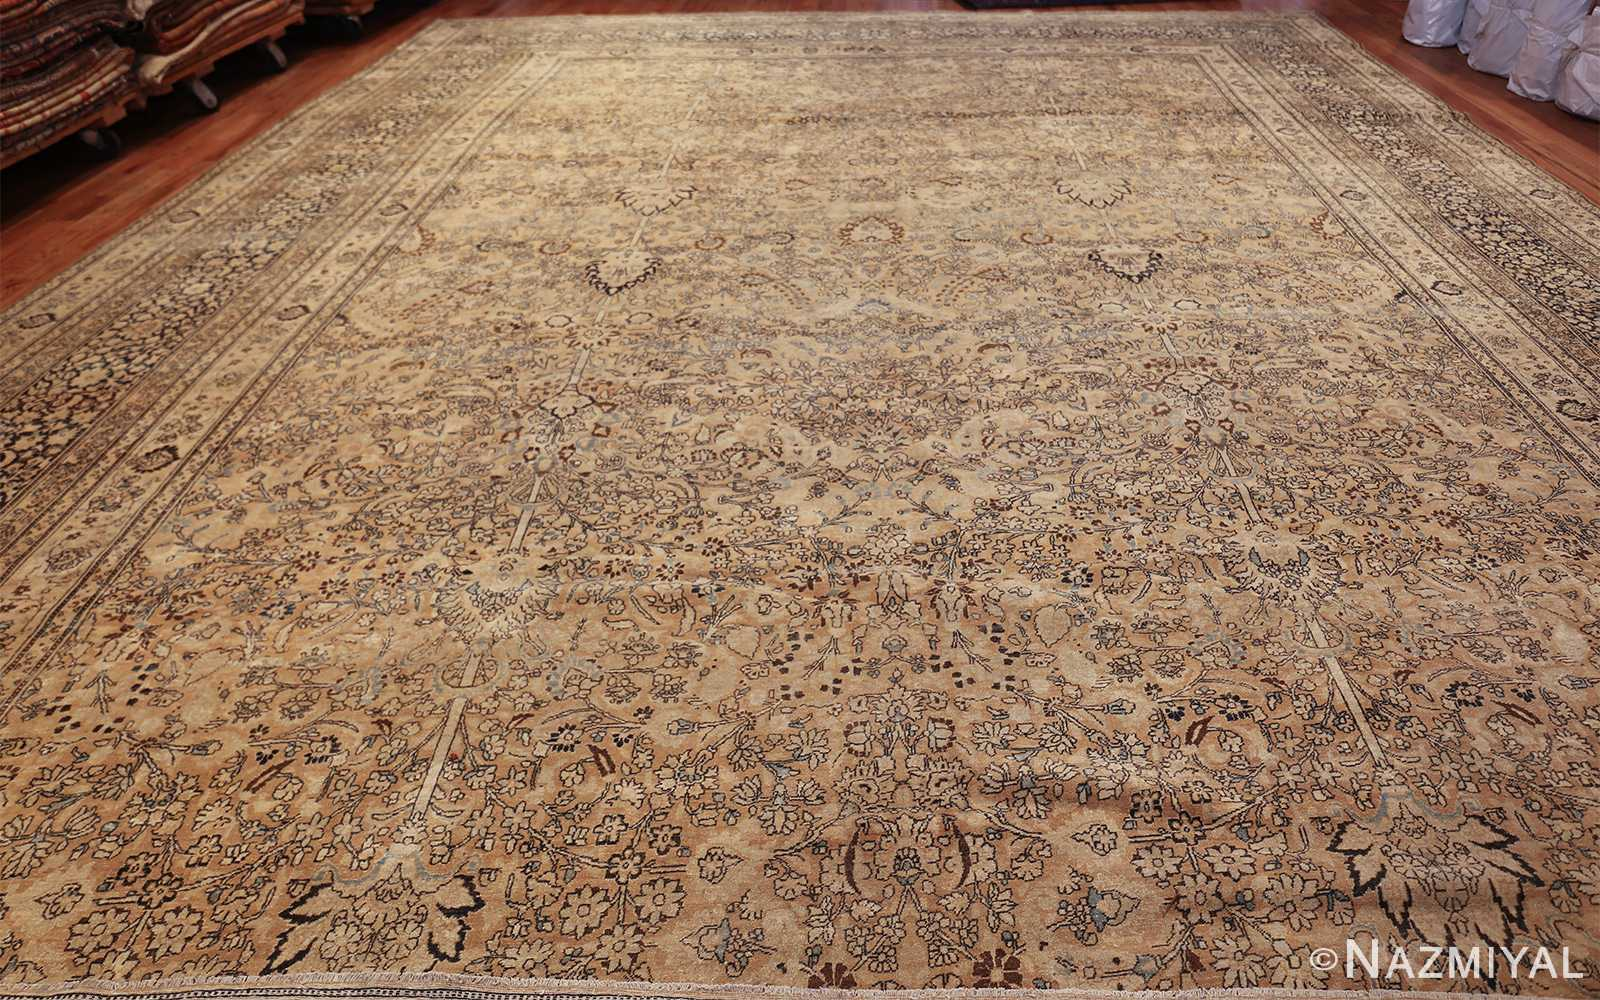 oversize neutral earth tone color persian khorassan rug 49427 whole Nazmiyal